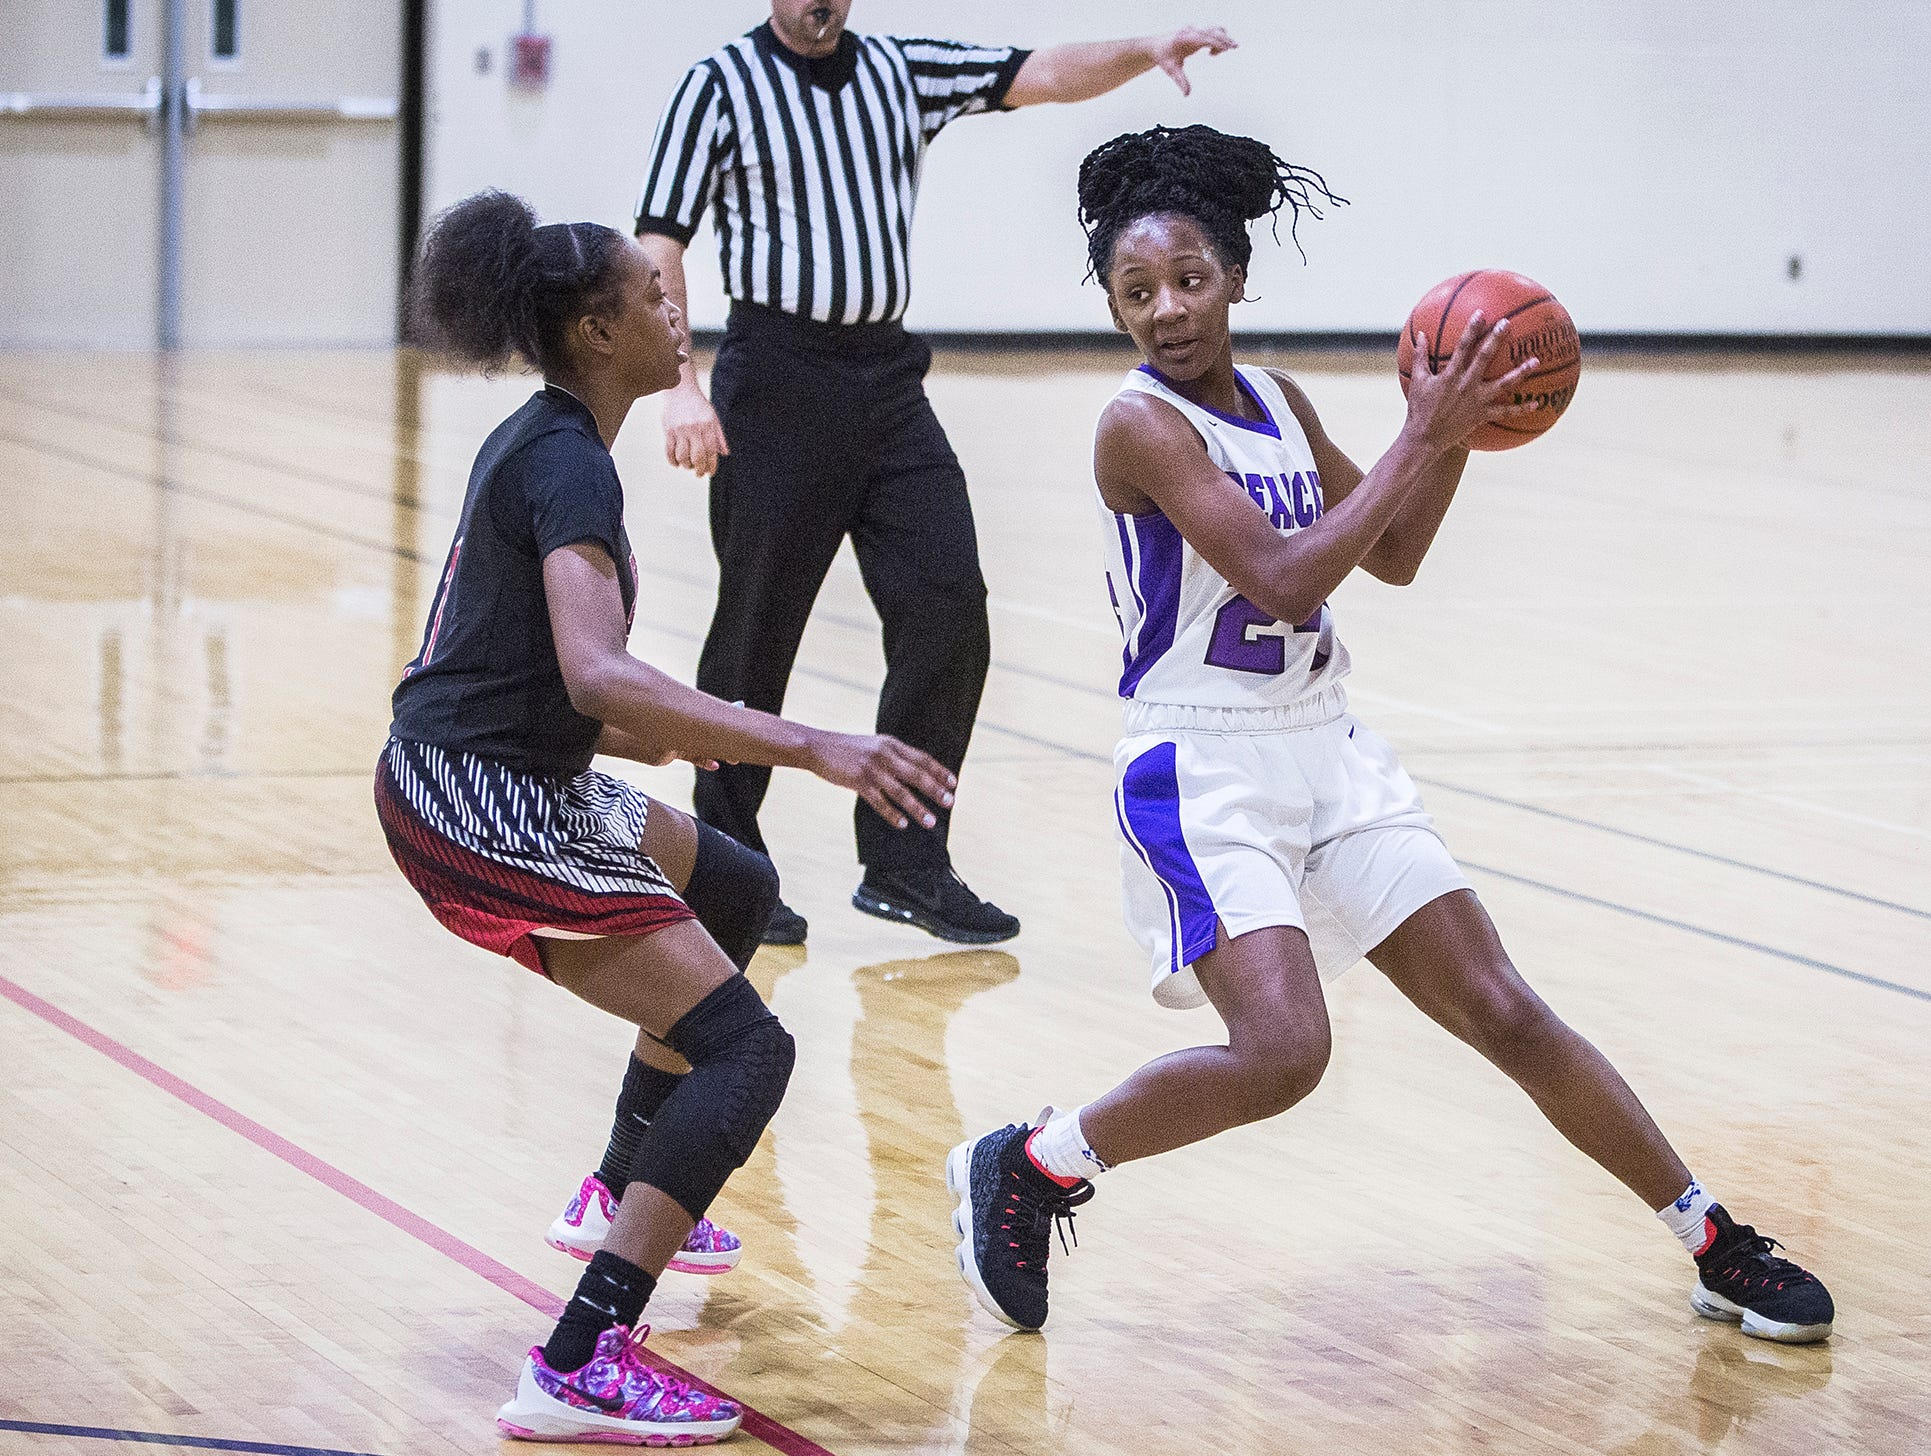 Central's Taydriana Robertson dribbles past Lafayette Jefferson during their game at Central Friday, Jan. 4, 2019.